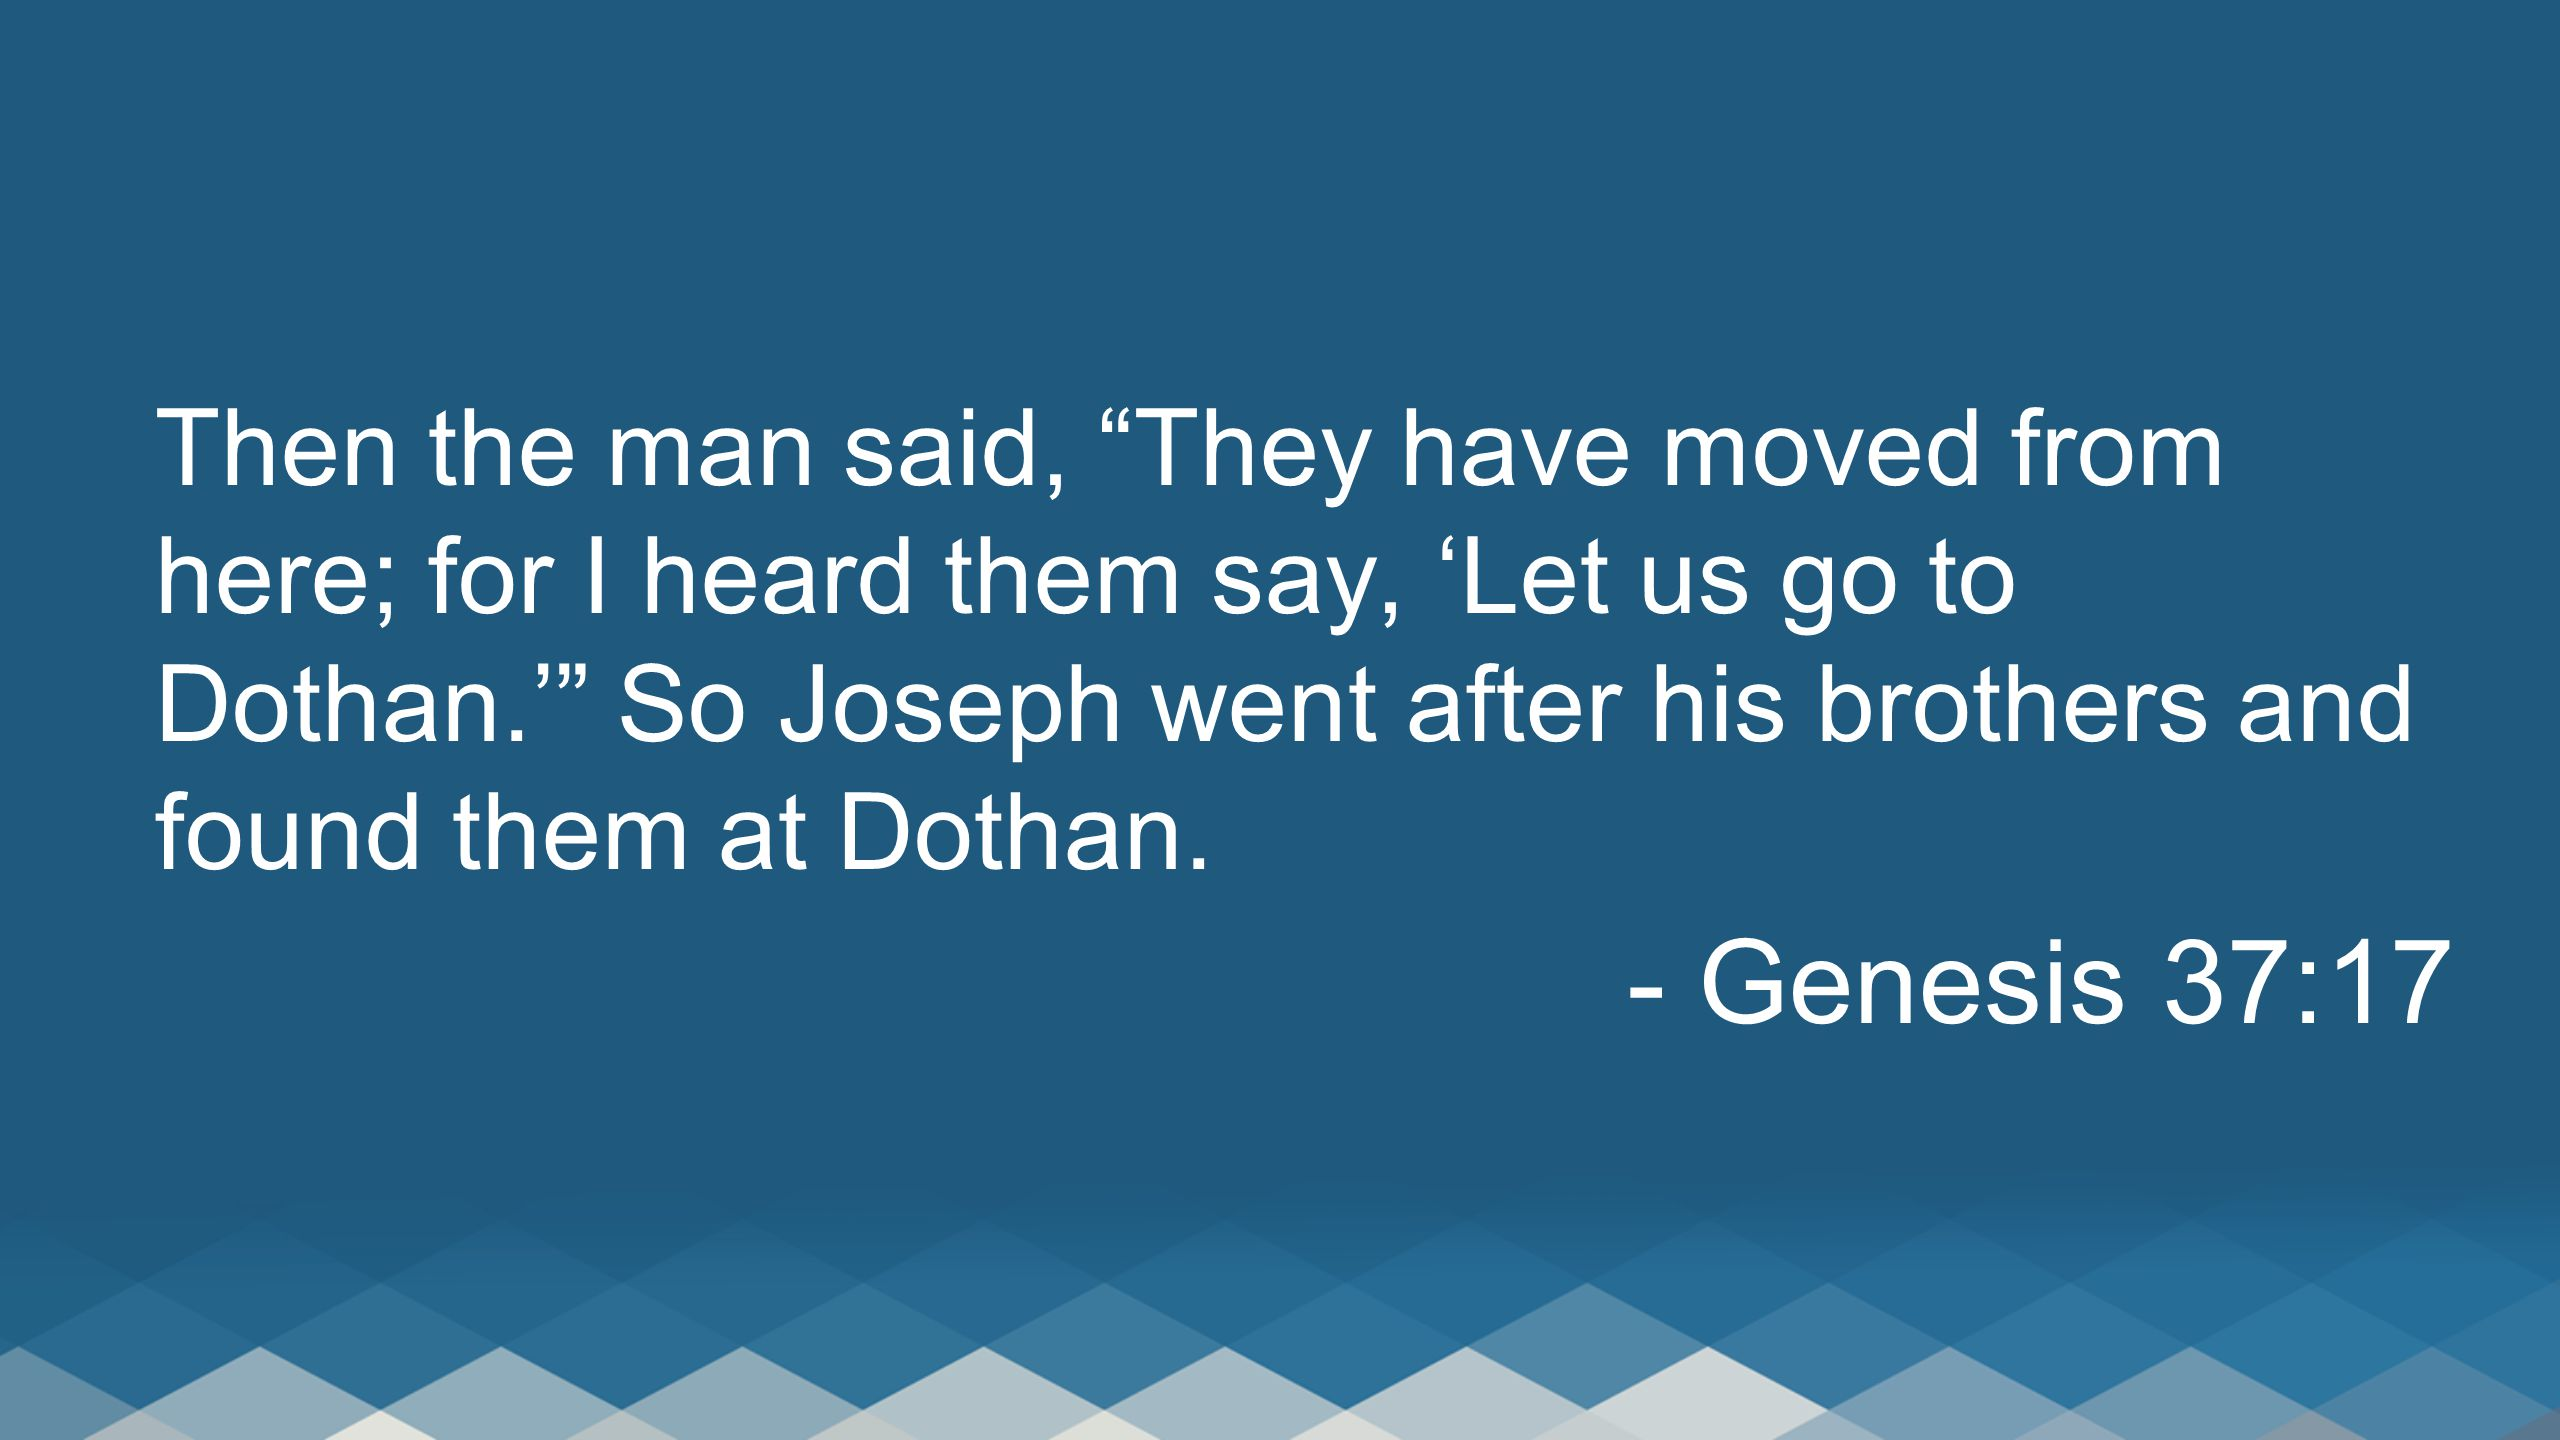 Then the man said, They have moved from here; for I heard them say, 'Let us go to Dothan.' So Joseph went after his brothers and found them at Dothan.